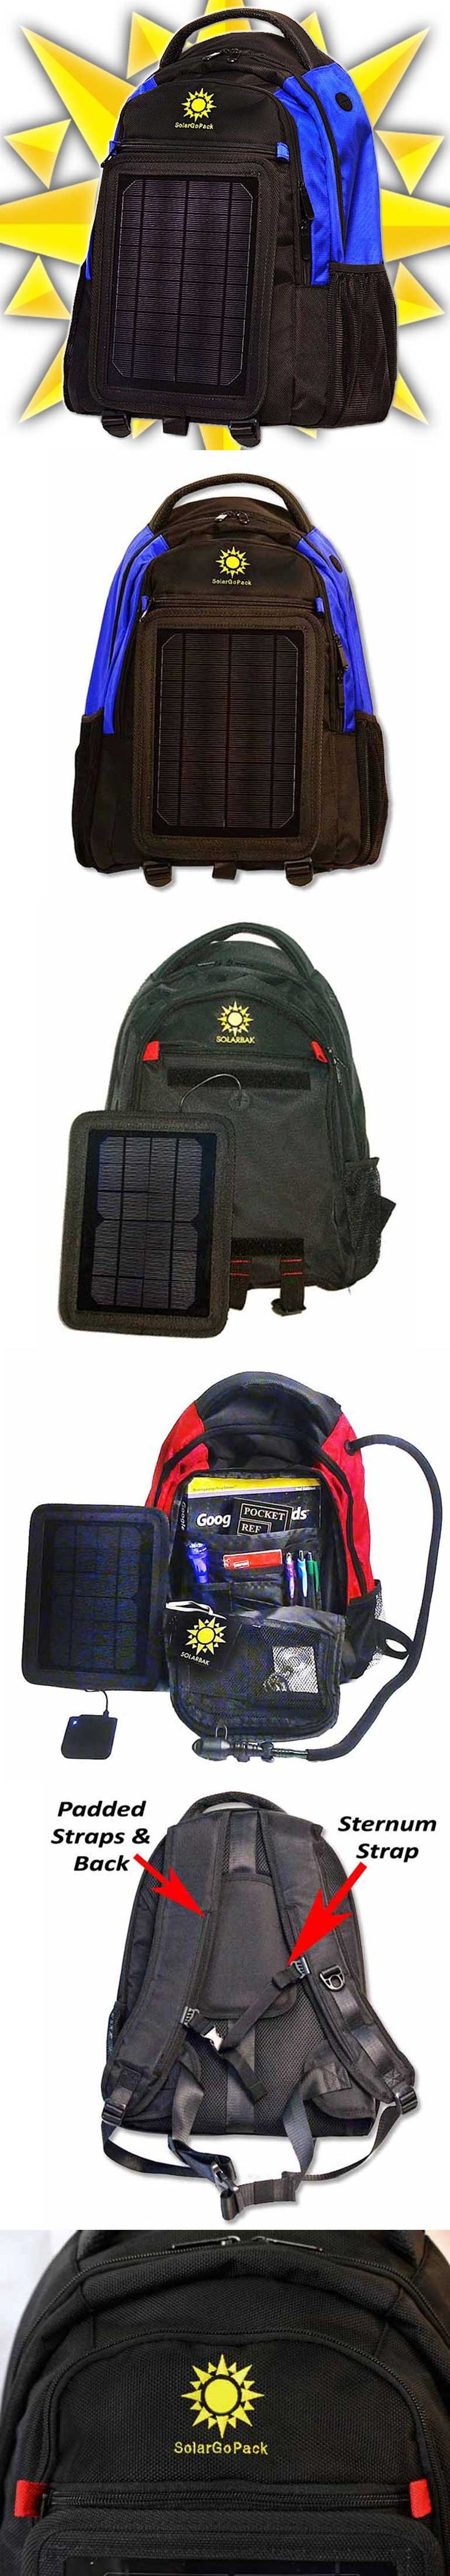 SolarGoPack – Solar Powered Backpack::          SolarGoPack is a durable, stylish backpack equipped with a solar panel used to charge your mobile devices.         The solar panel on the SolarGoPack bag powers a battery that will charge any of your electronic devices.         A powerful 5w, 12000 mAh Lion Bat, lightweight removable panel designed with cutting edge solar panel technology. www.gonnawannagetit.com